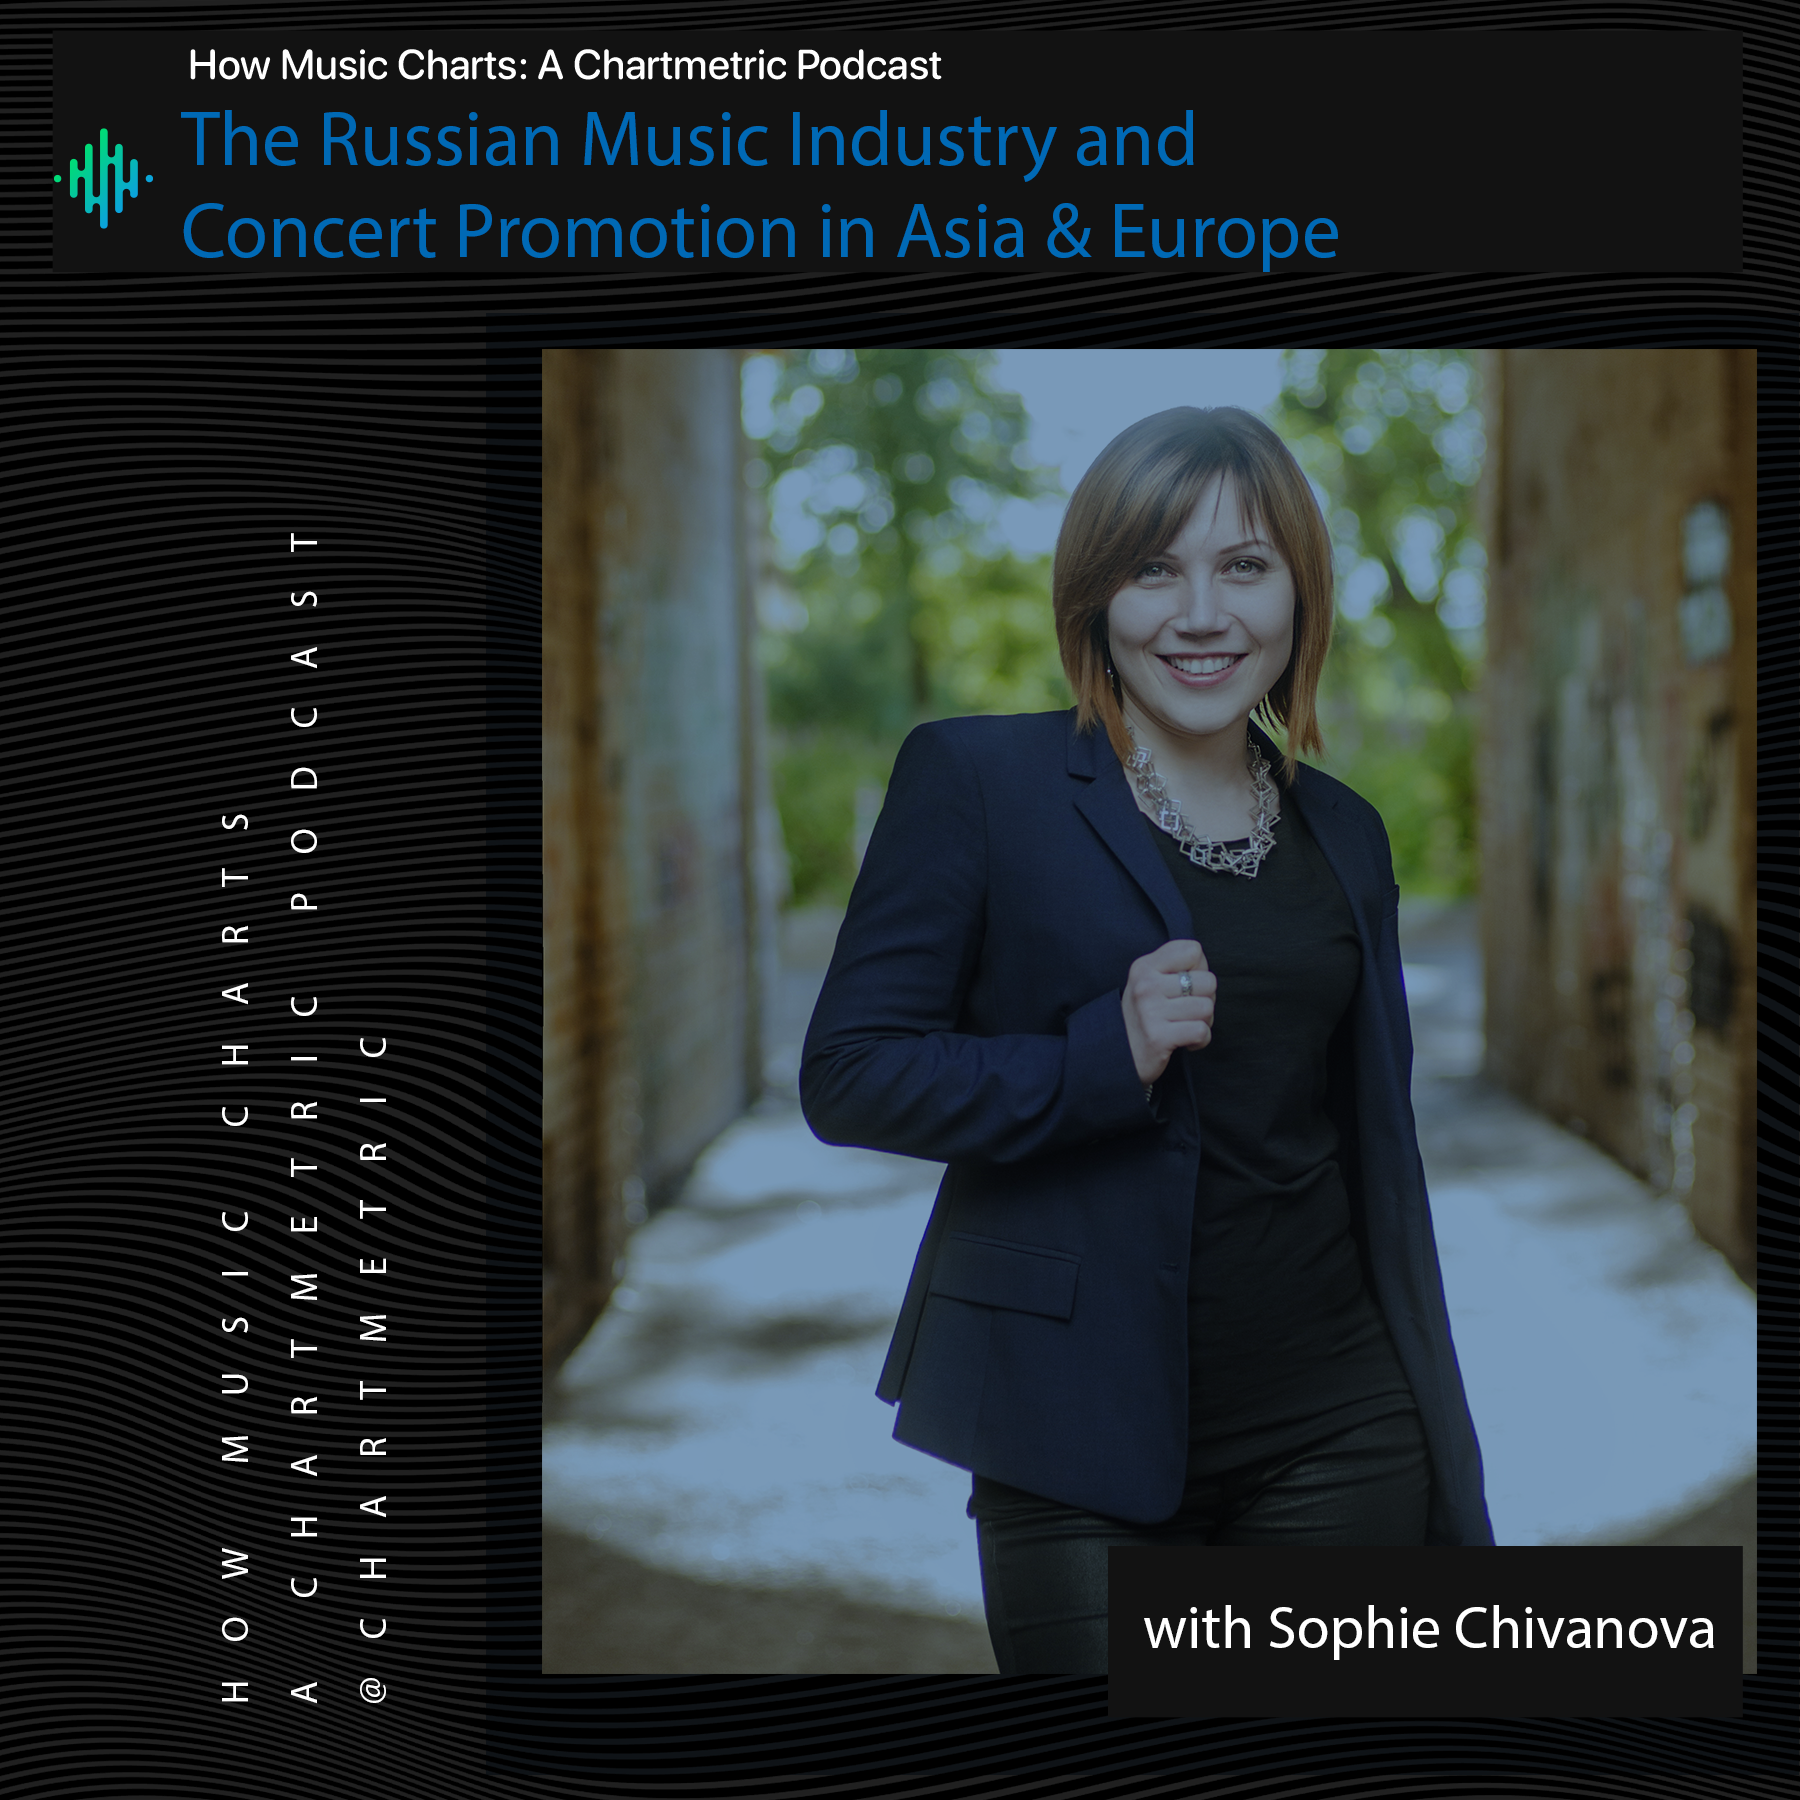 The Russian Music Industry and Concert Promotion in Asia & Europe With Sophie Chivanova